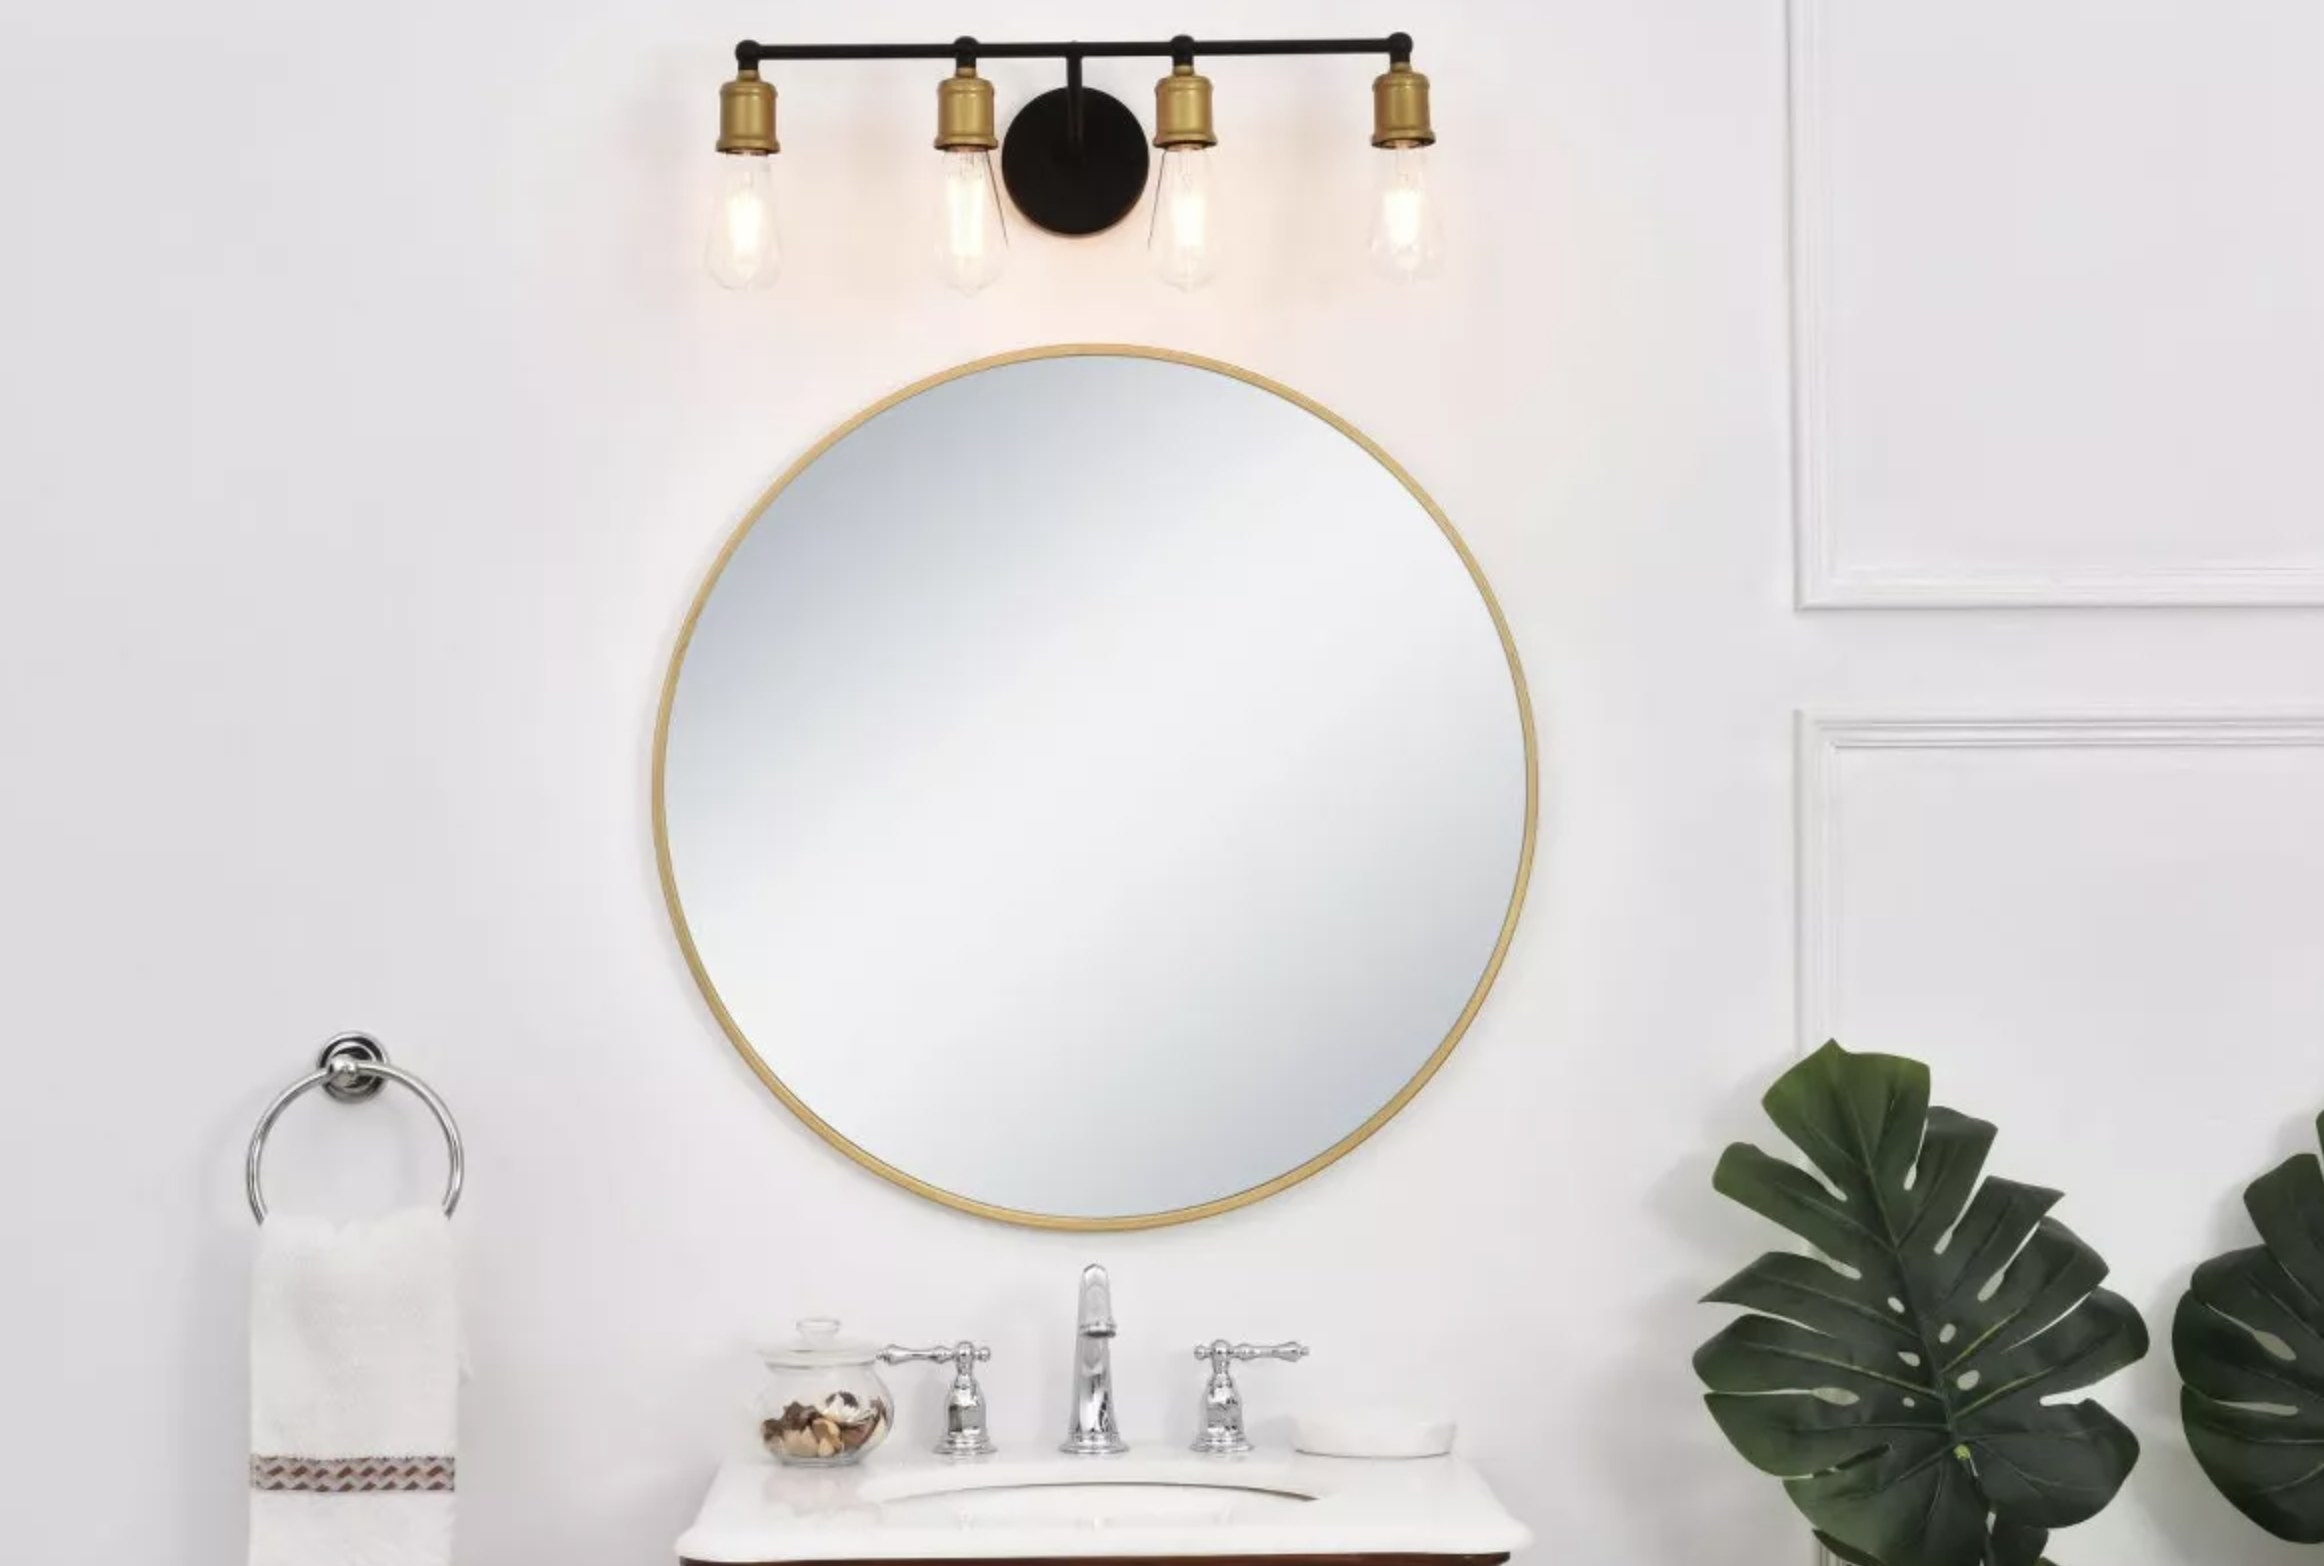 A vanity light with four naked bulbs above a bathroom sink